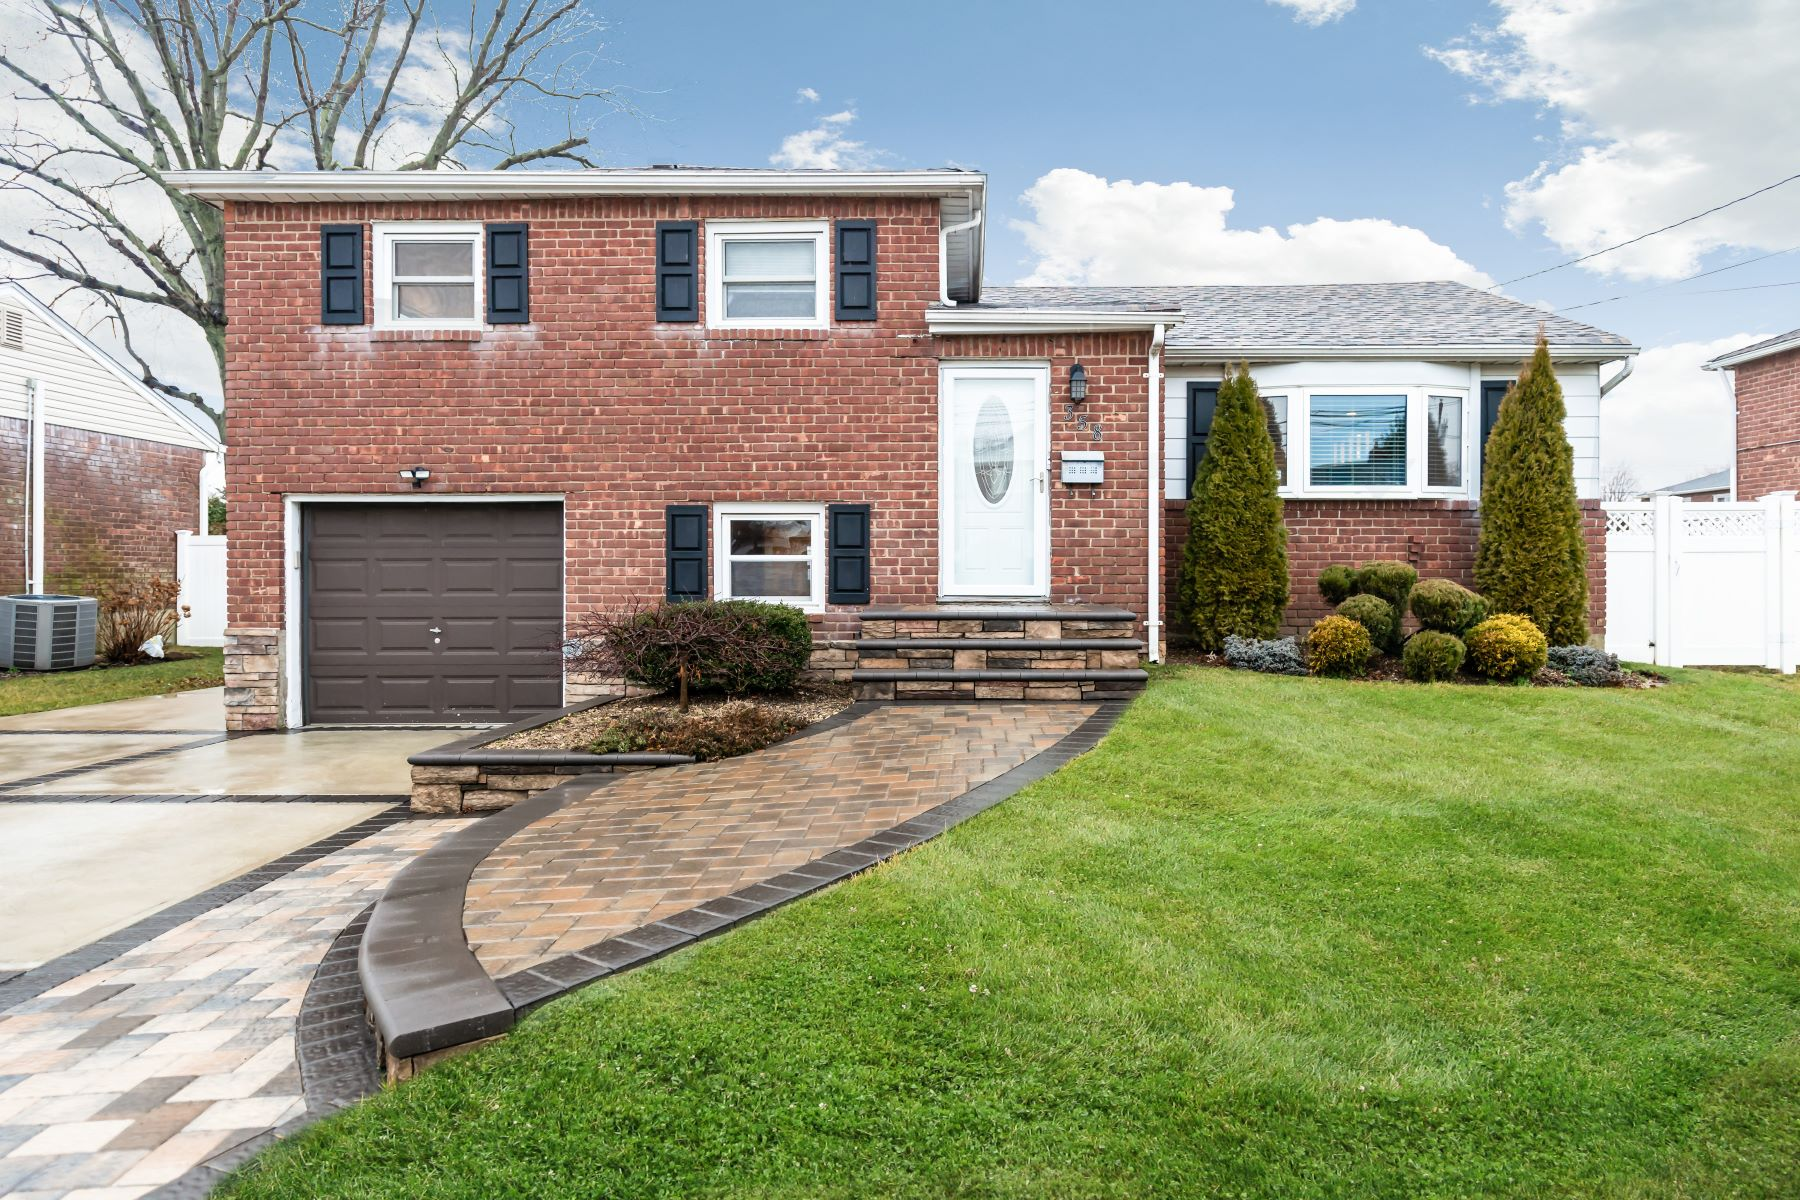 Single Family Homes for Sale at Massapequa Park 358 Broadway Massapequa Park, New York 11762 United States